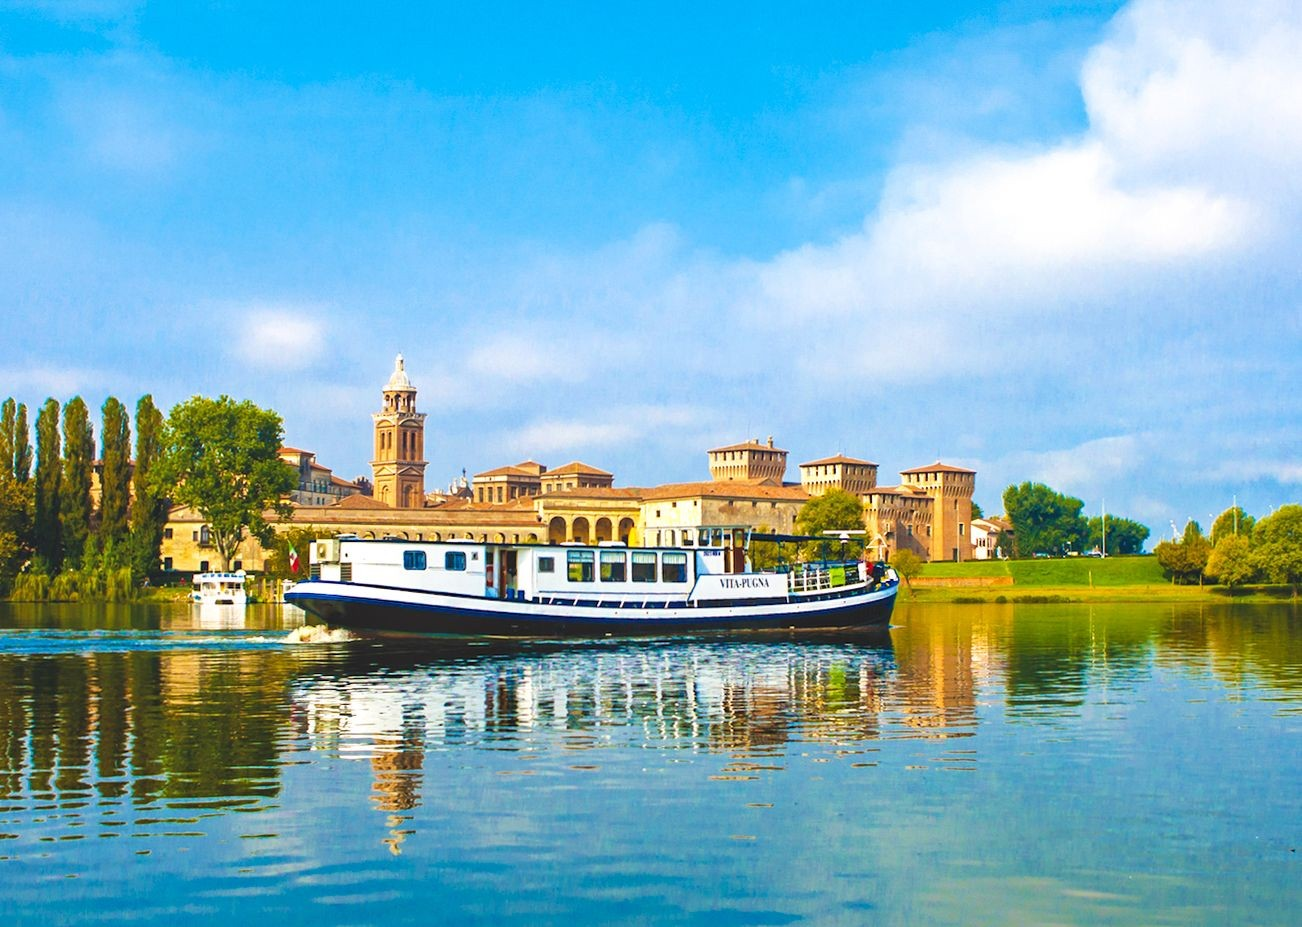 vita-pugna-cruise-boat-italy-cycling-tour-mantova-leisure-fun.jpg - Italy - Venetian Waterways (Mantova to Venice) - Bike and Barge Holiday - Leisure Cycling